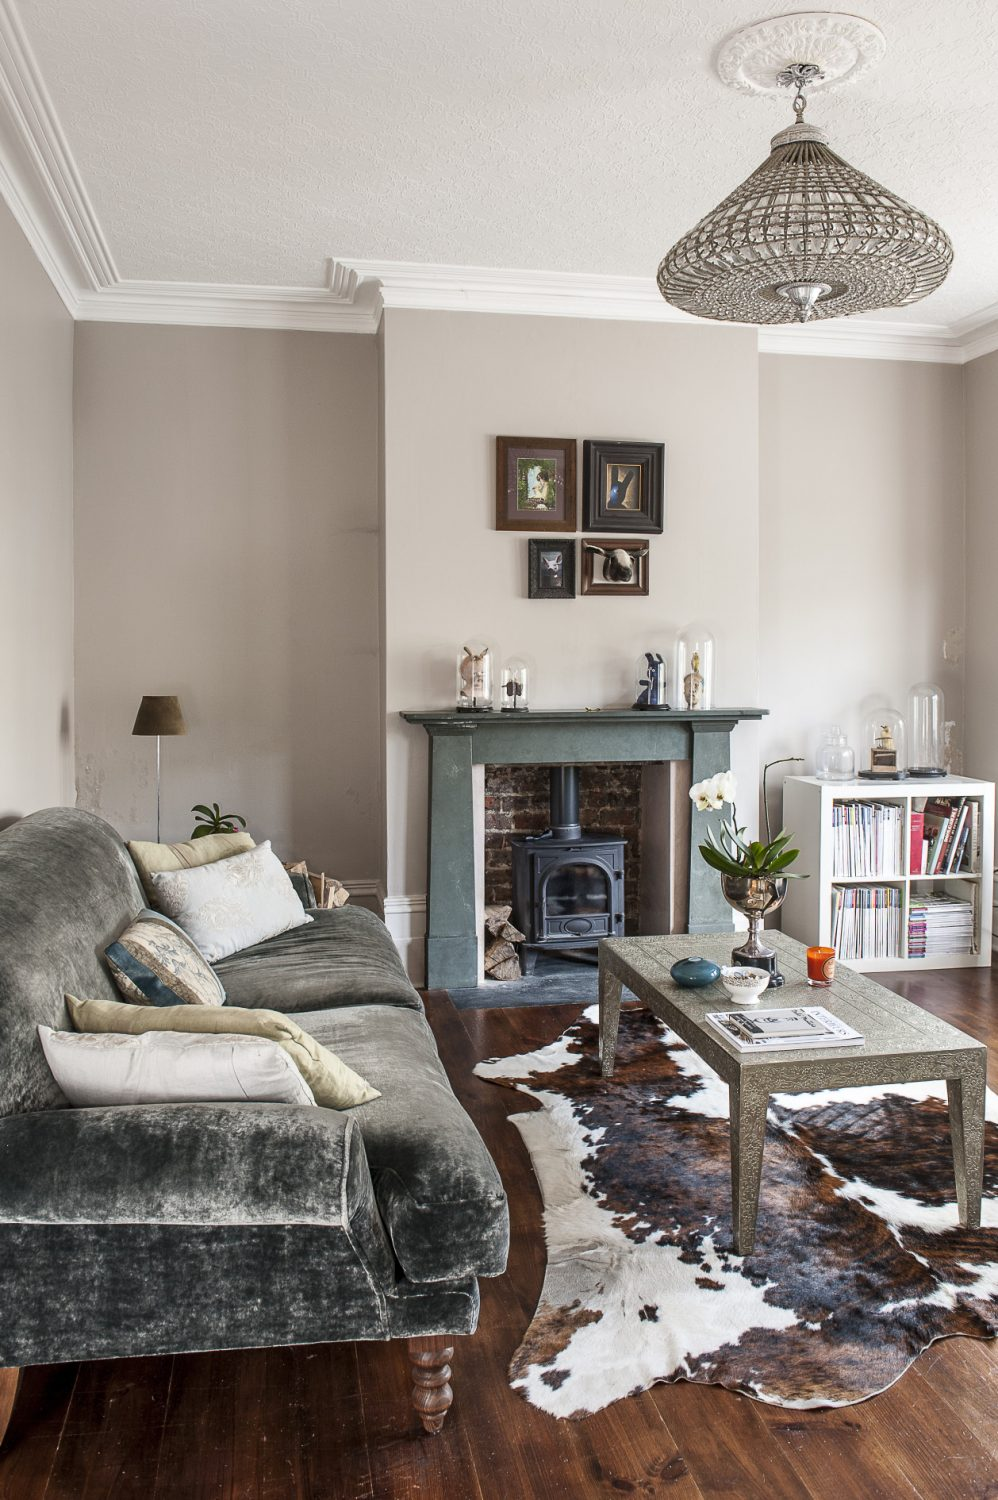 Grey is a predominant backdrop, blending into all the individual schemes within each room and seamlessly uniting the whole house together